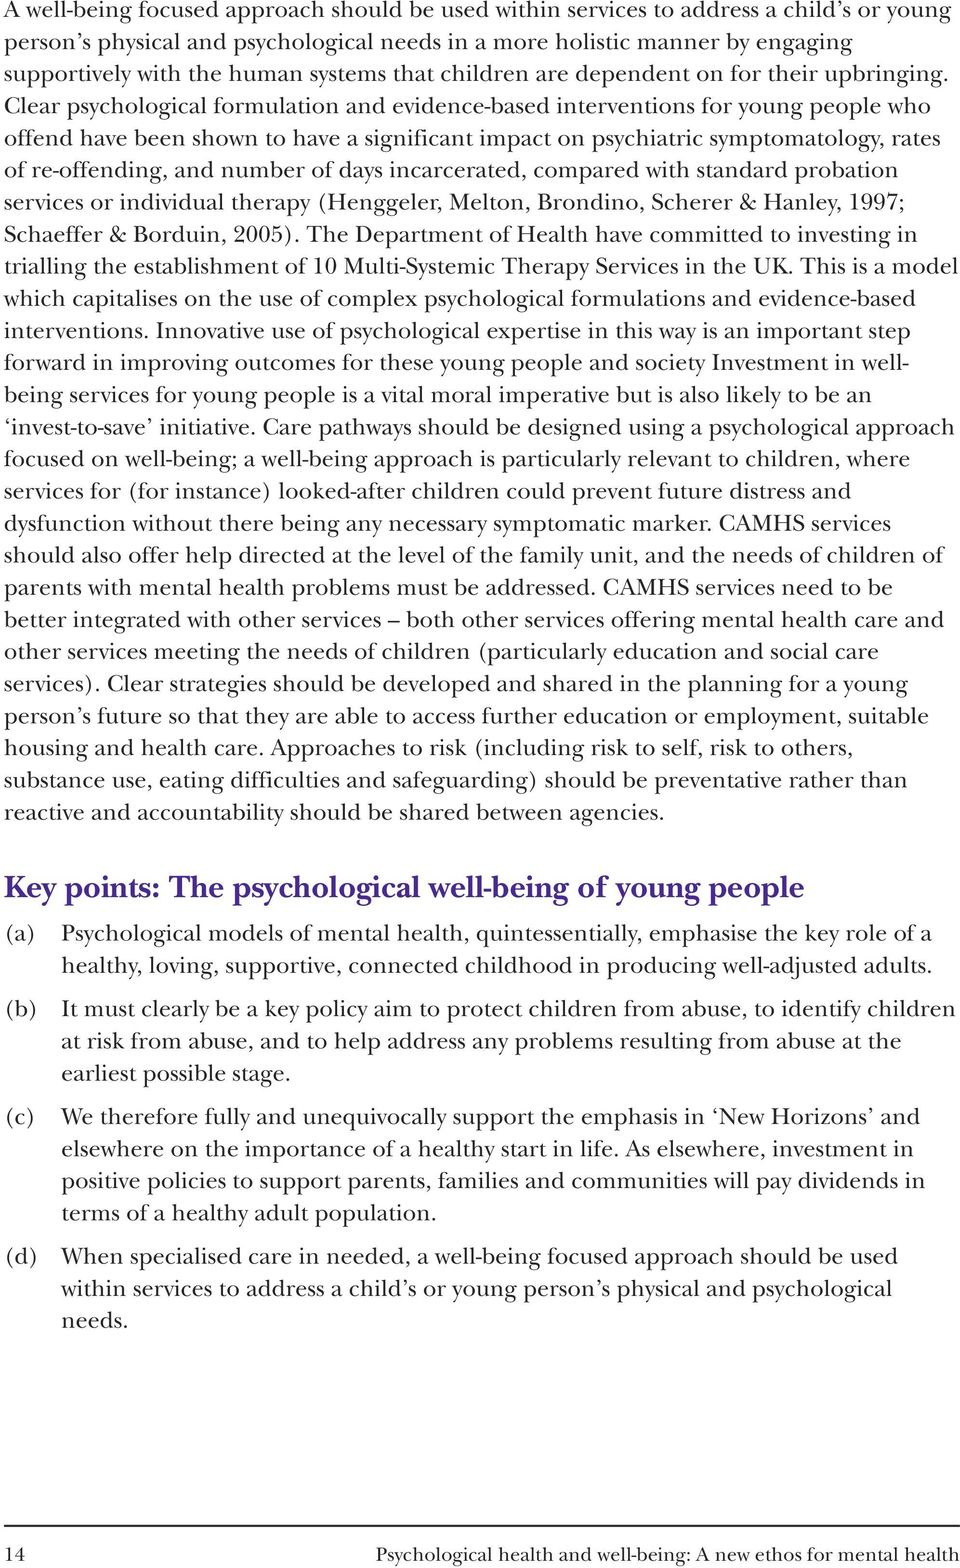 Clear psychological formulation and evidence-based interventions for young people who offend have been shown to have a significant impact on psychiatric symptomatology, rates of re-offending, and